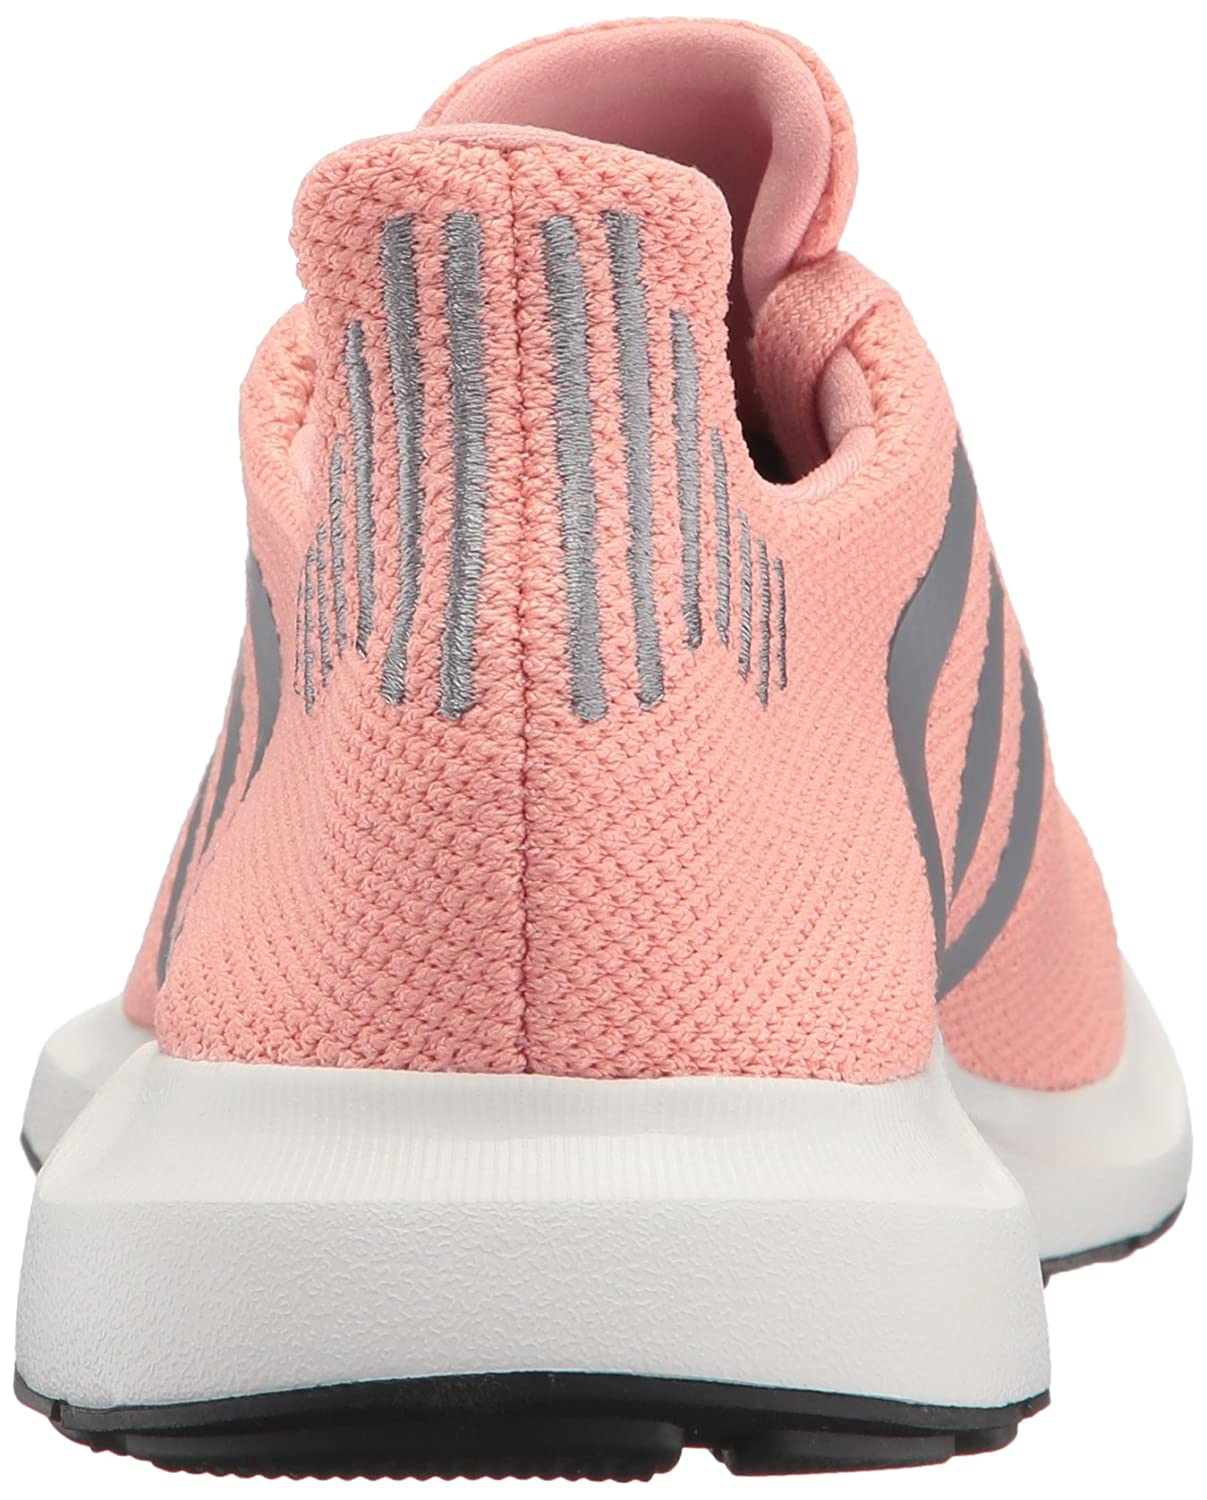 adidas Women's Swift Run W B01MSZ4PX8 7 B(M) US|Trace Pink/Grey Three/Crystal White